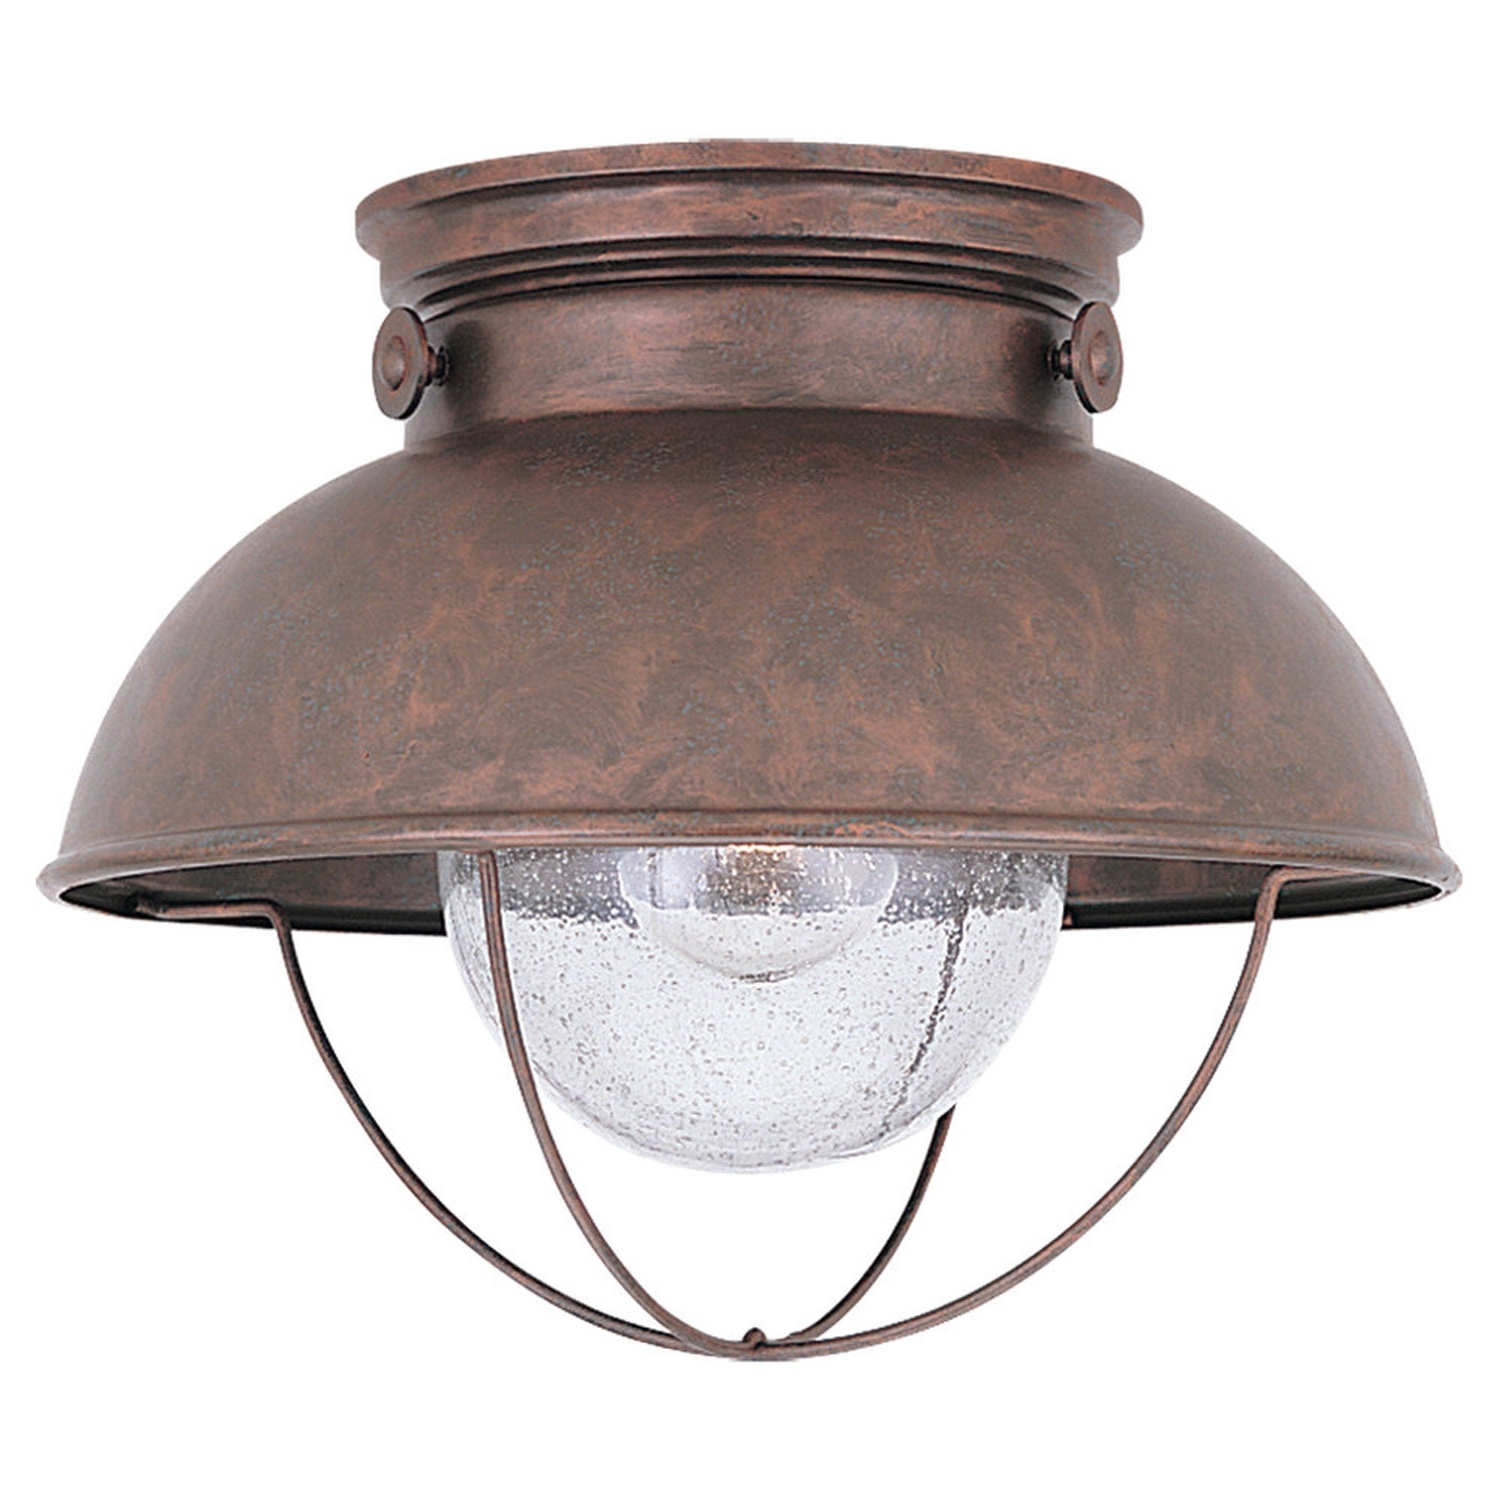 Bellacor In Most Popular Outdoor Entrance Ceiling Lights (View 17 of 20)